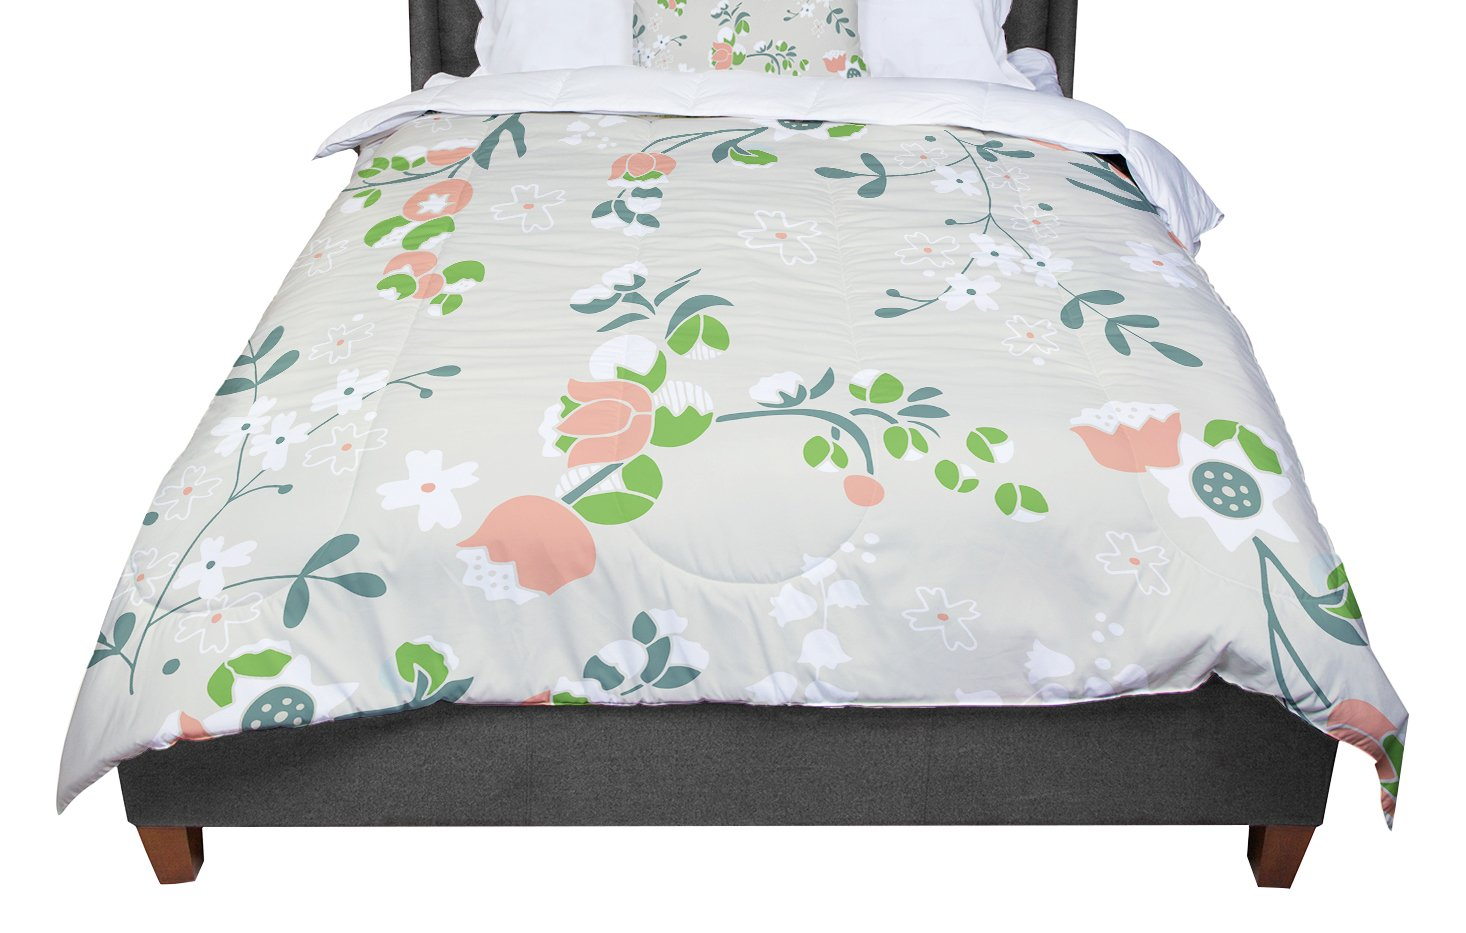 KESS InHouse Very Sarie 'Early Waking' Green Floral Twin Comforter, 68' X 88'